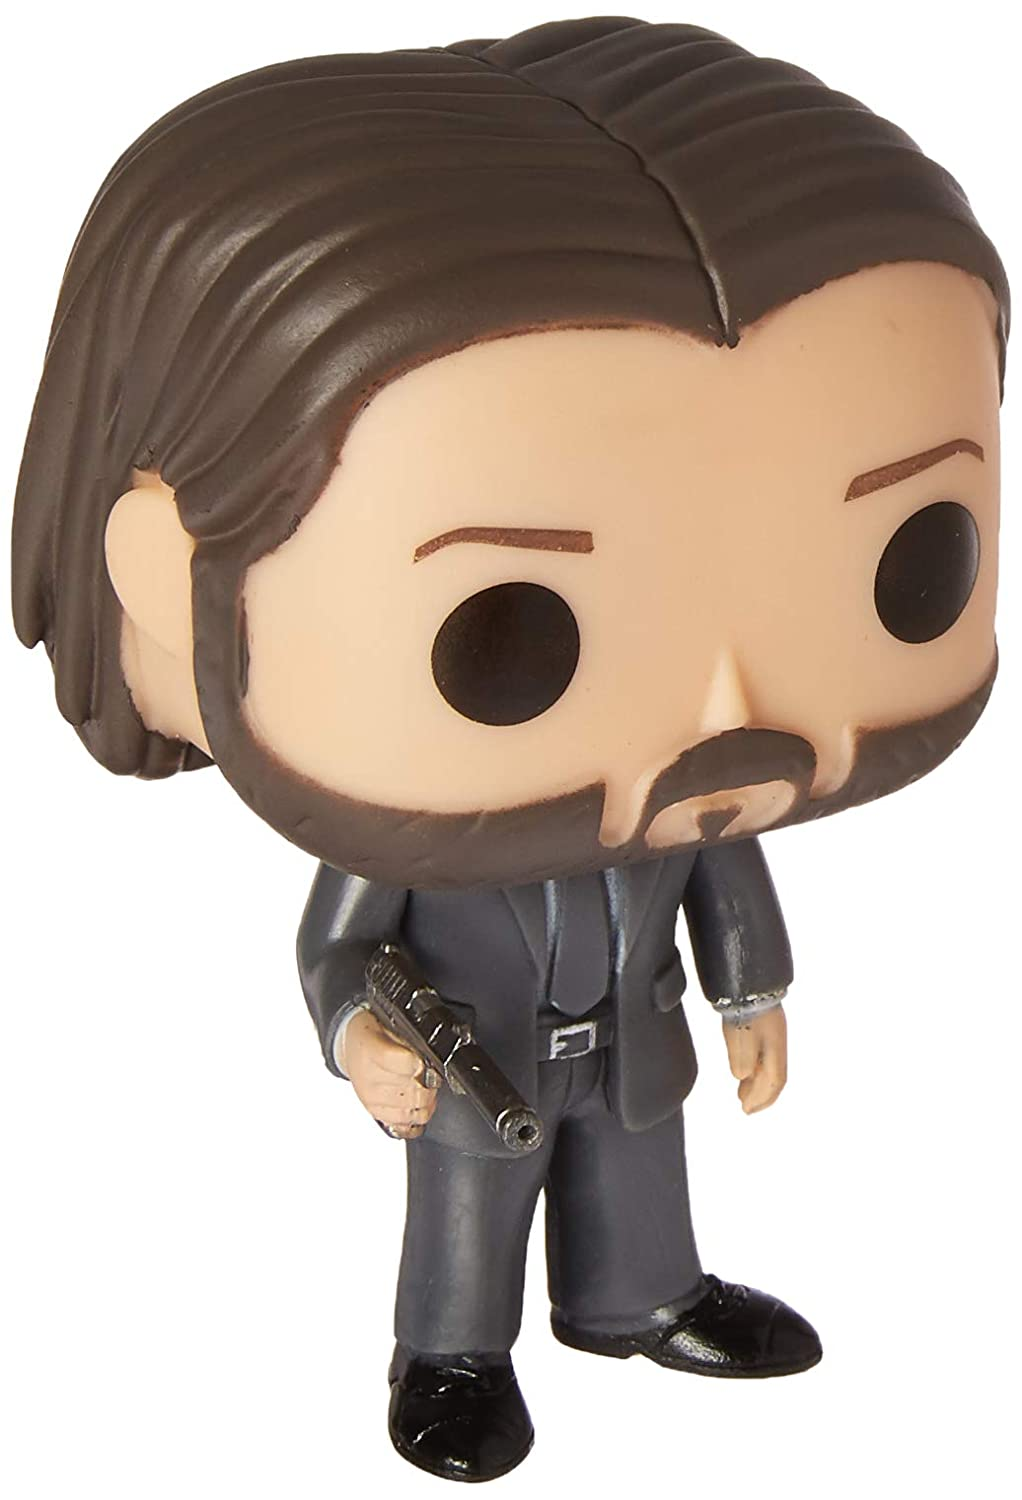 Funko POP Movies John Wick John Wick Styles May Vary